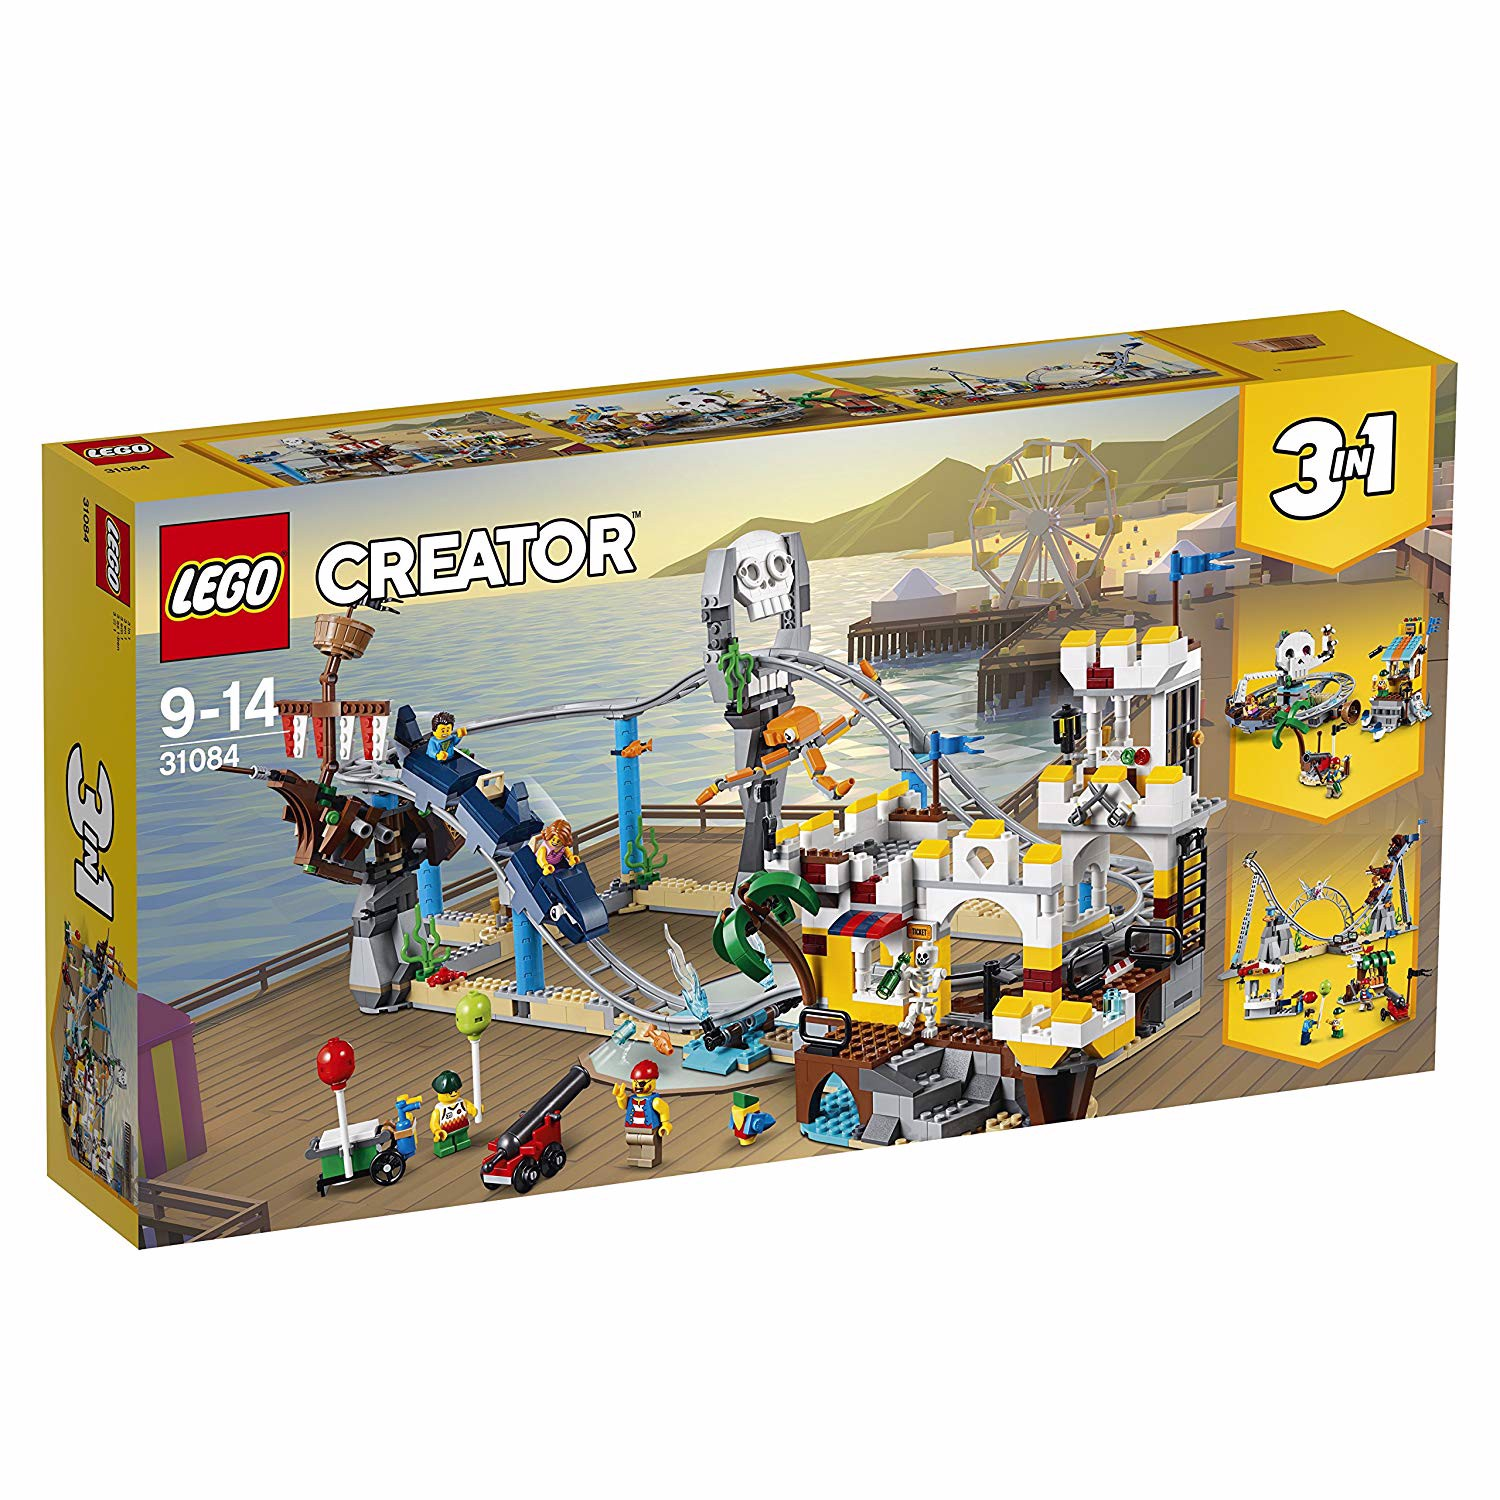 [CÓ SẴN] LEGO Creator 31084 Pirate Roller Coaster 3 in 1